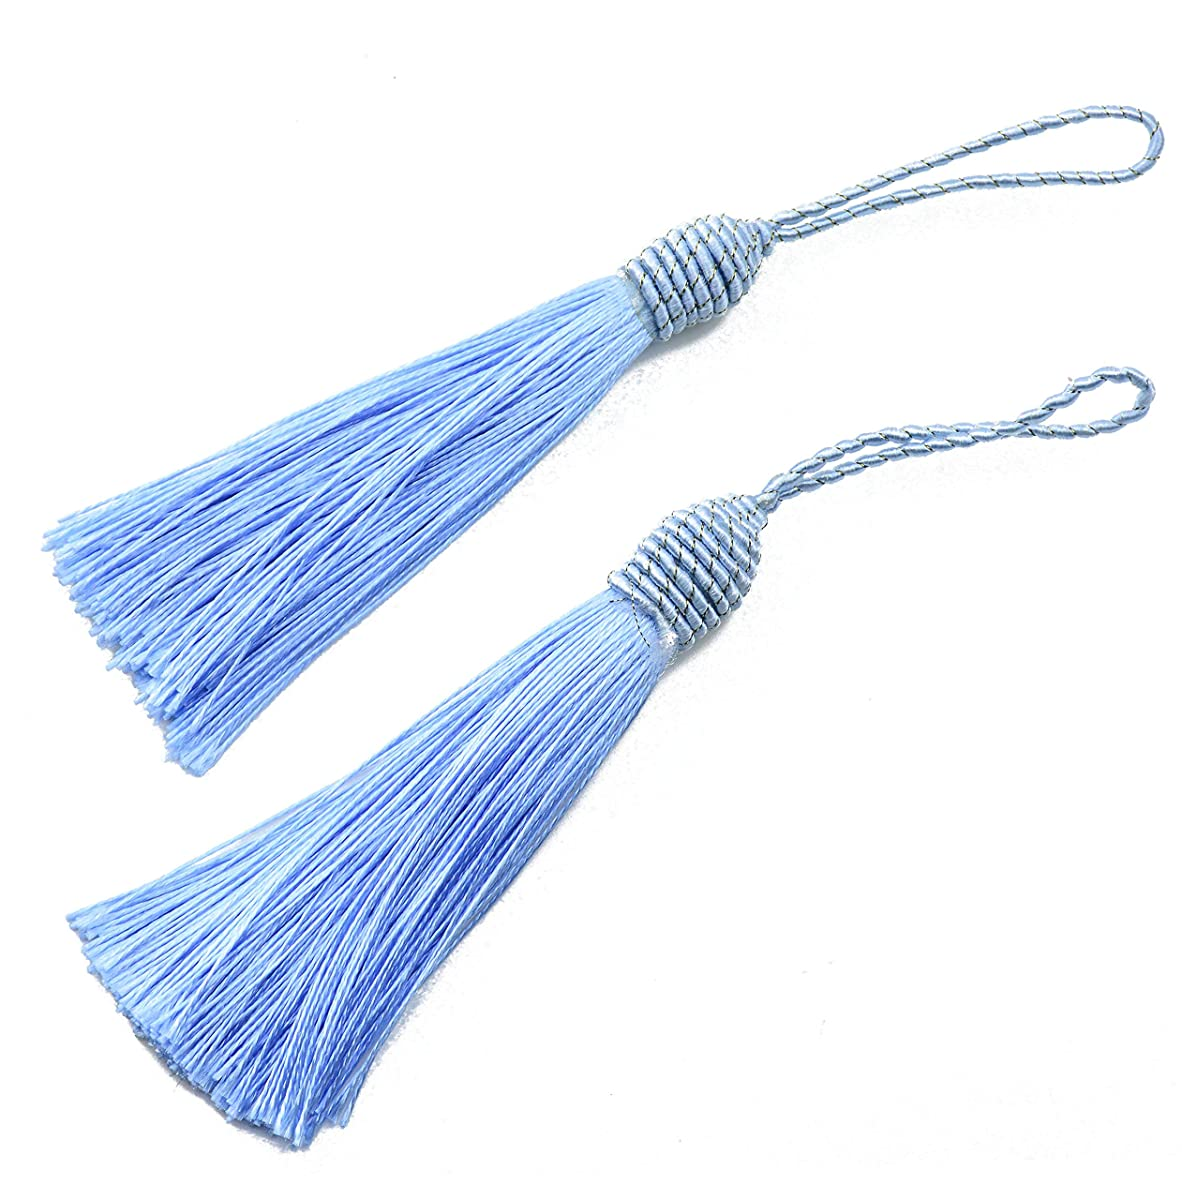 20pcs 15.5cm/6 Inch Silky Floss Bookmark Tassels with 2-Inch Cord Loop and Small Chinese Knot for Jewelry Making, Souvenir, Bookmarks, DIY Craft Accessory (Sky Blue)